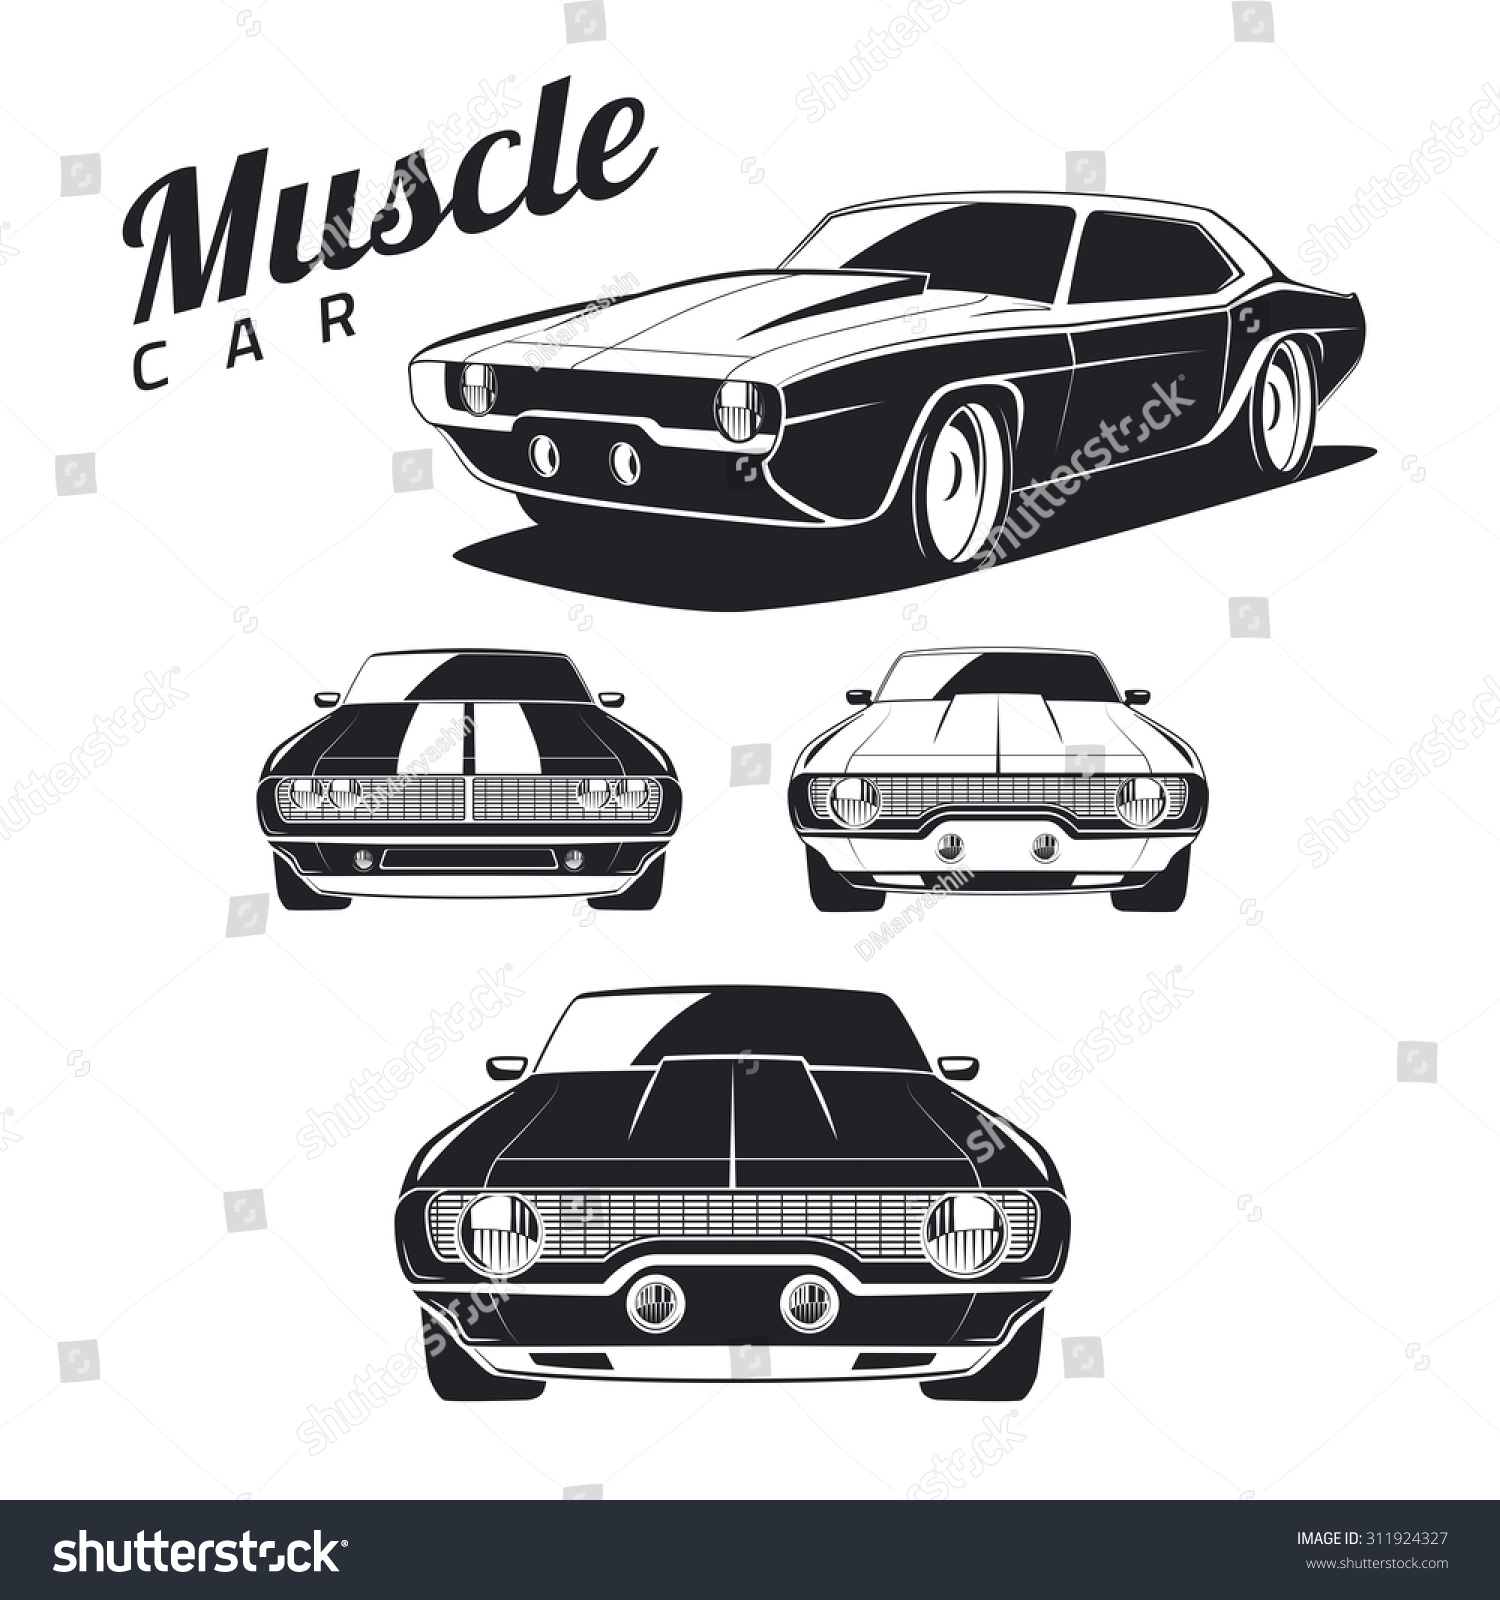 Royalty Free Set Of Muscle Car Illustrations Stock